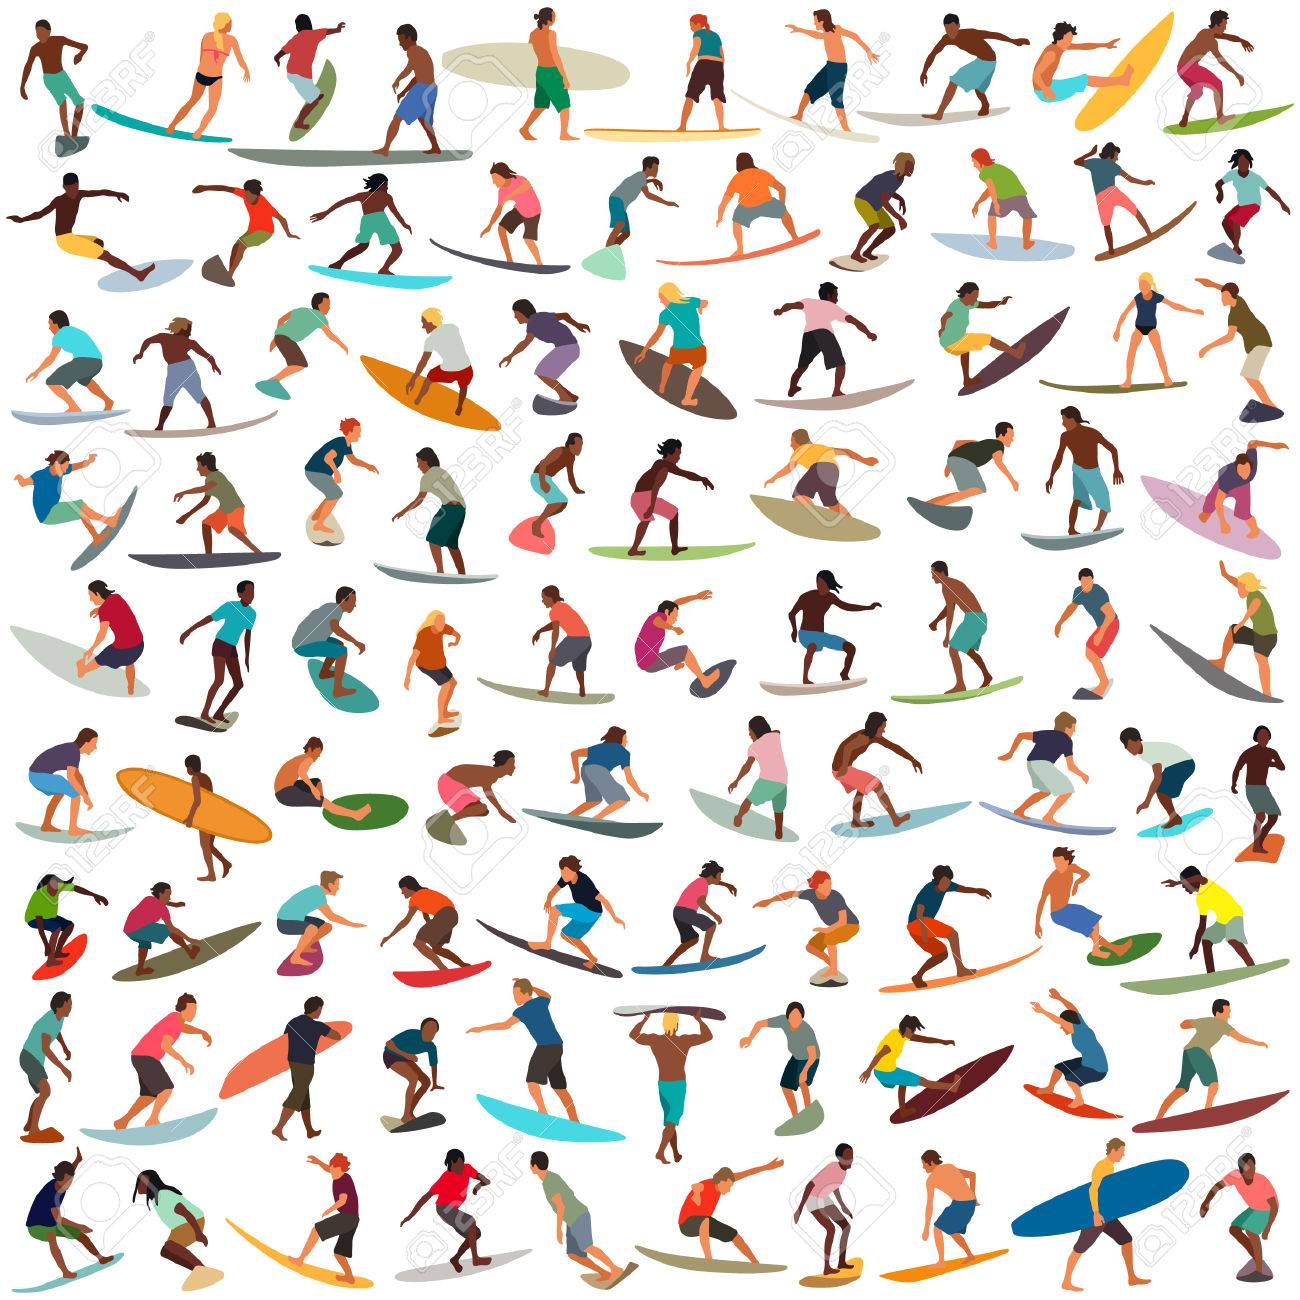 Large collection of vector surfers - 52359025